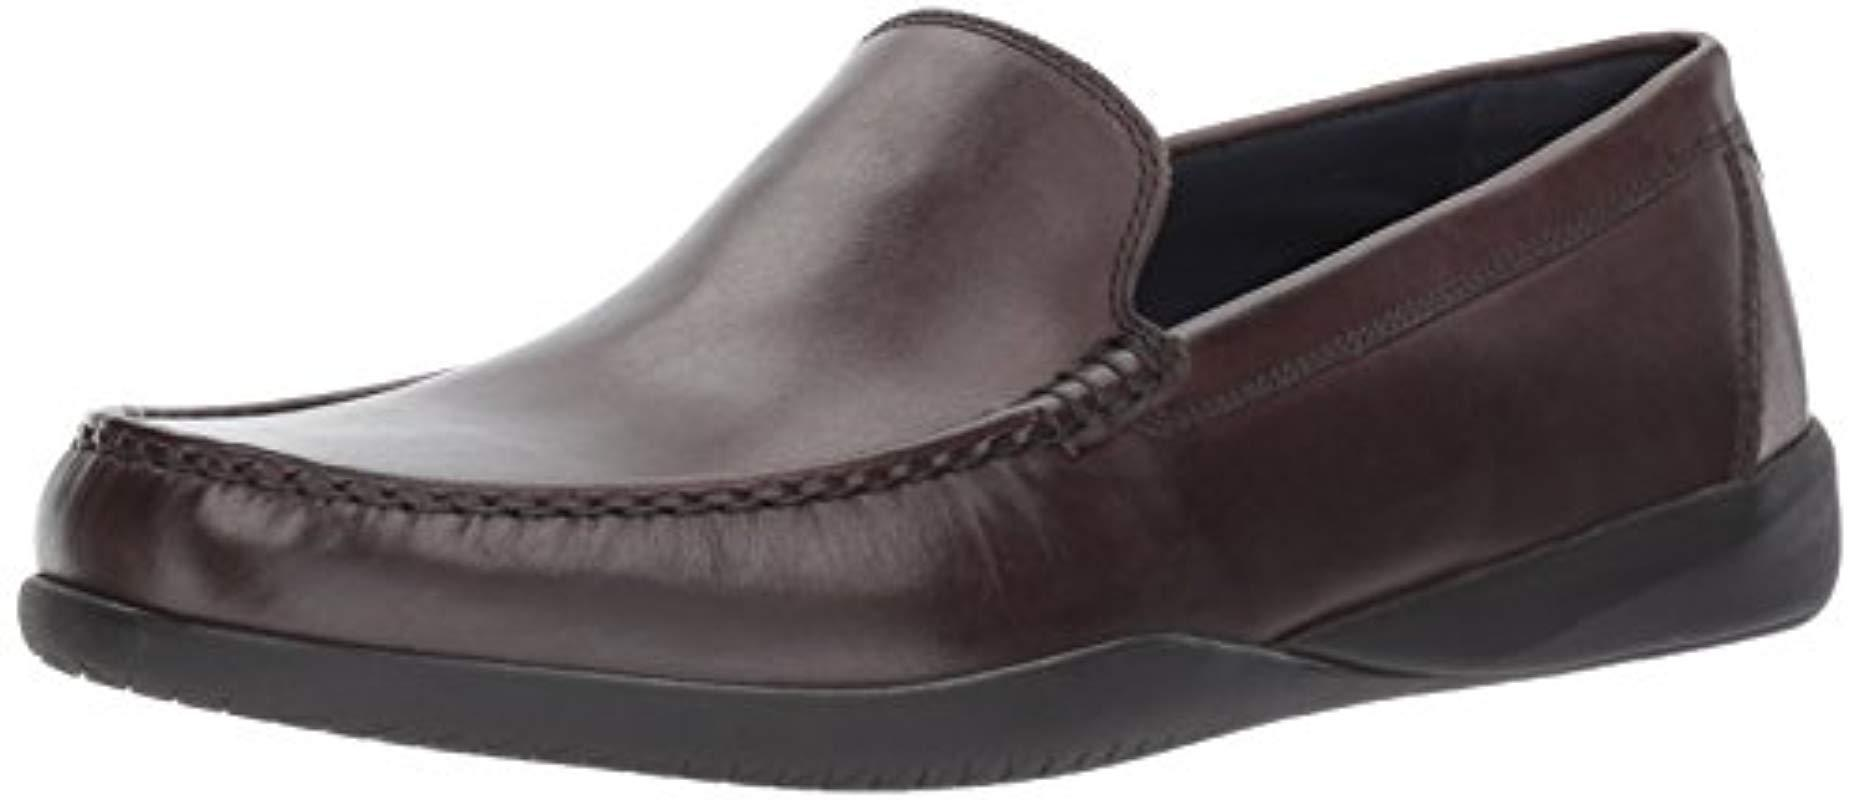 422c3e0b179 Lyst - Cole Haan Shepard Venetian Loafter Ii for Men - Save 33%